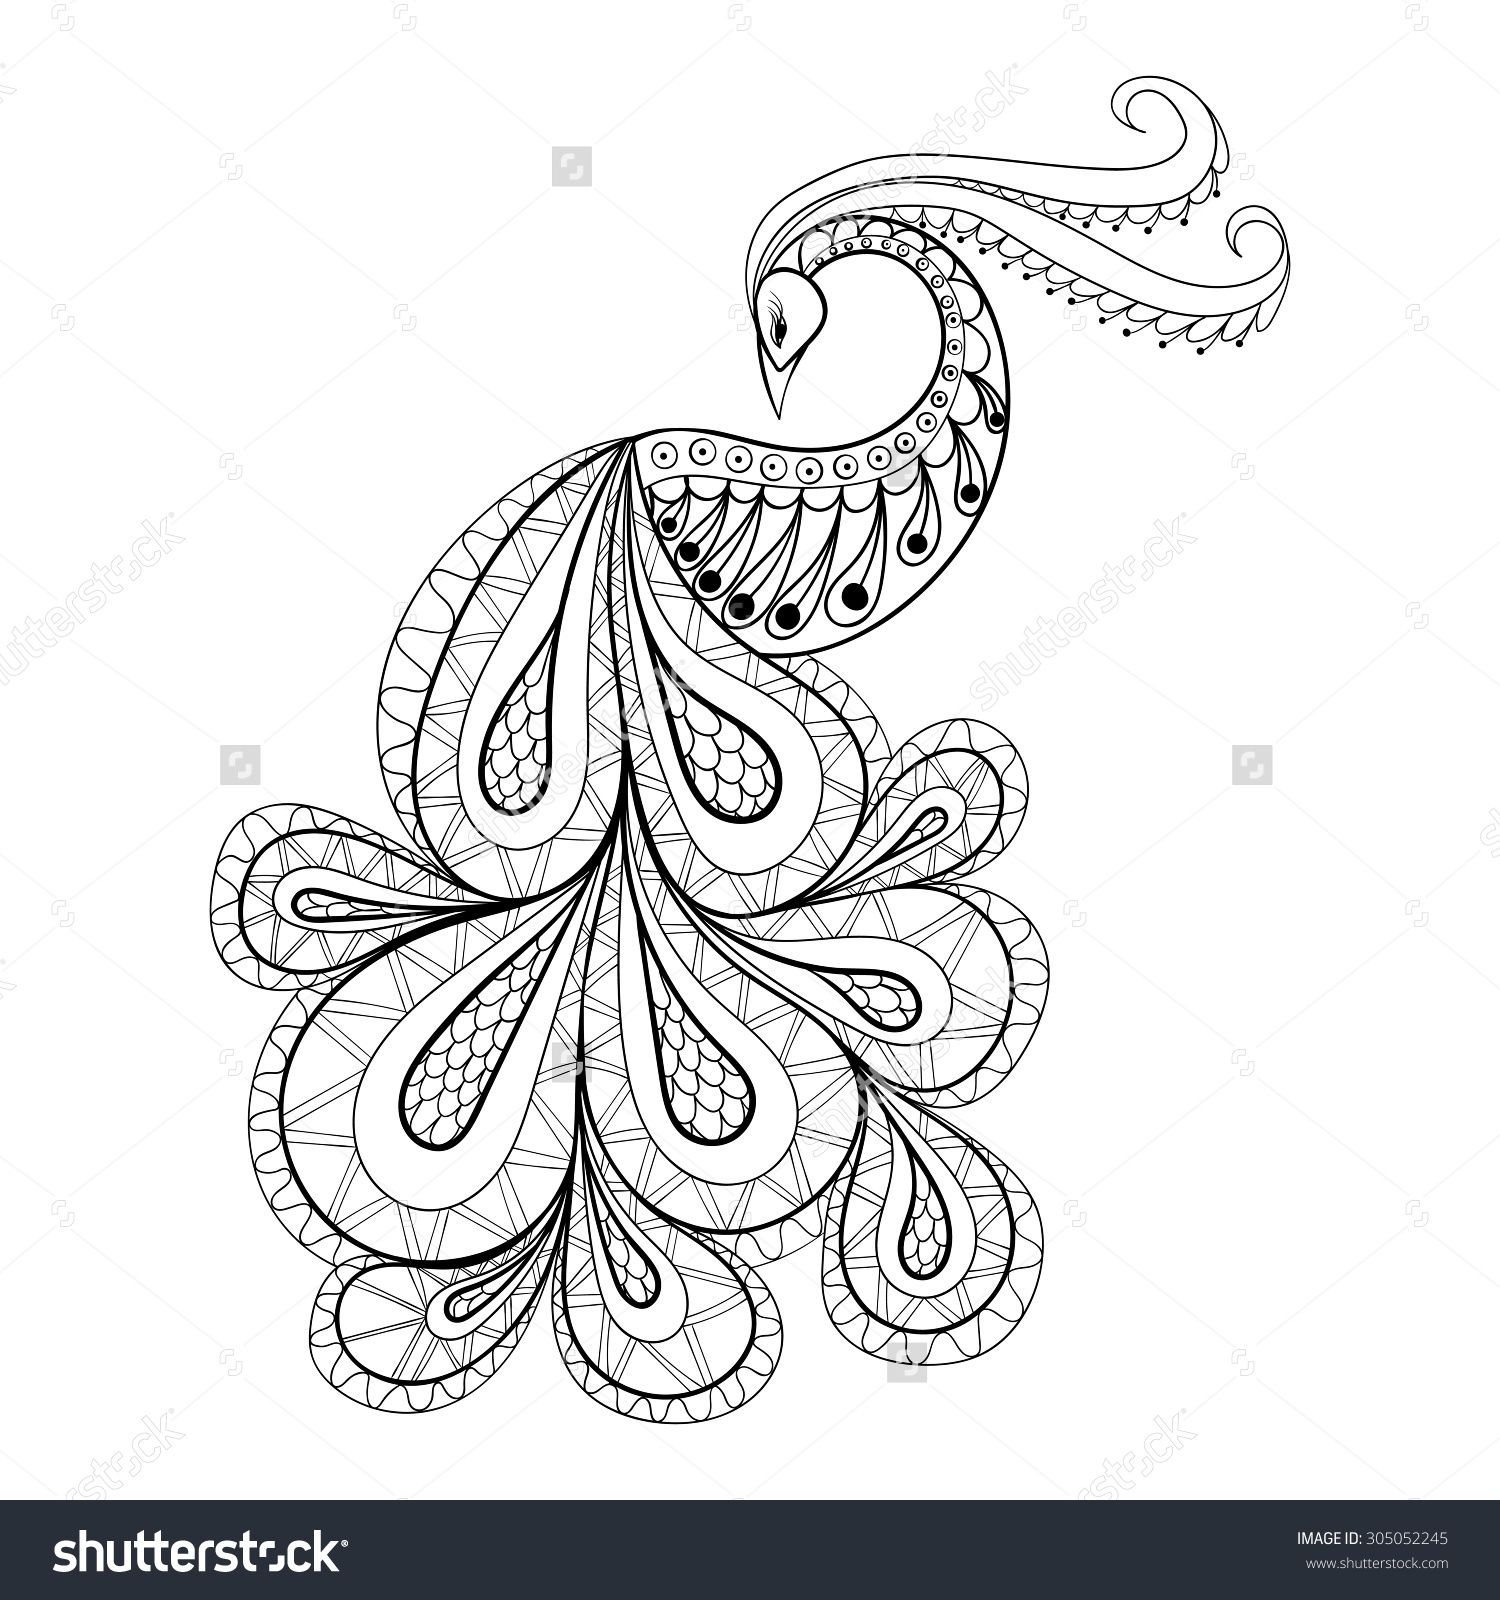 Coloring pages of mehndi hand pattern - Hand Drawn Peacock For Antistress Coloring Page Vector